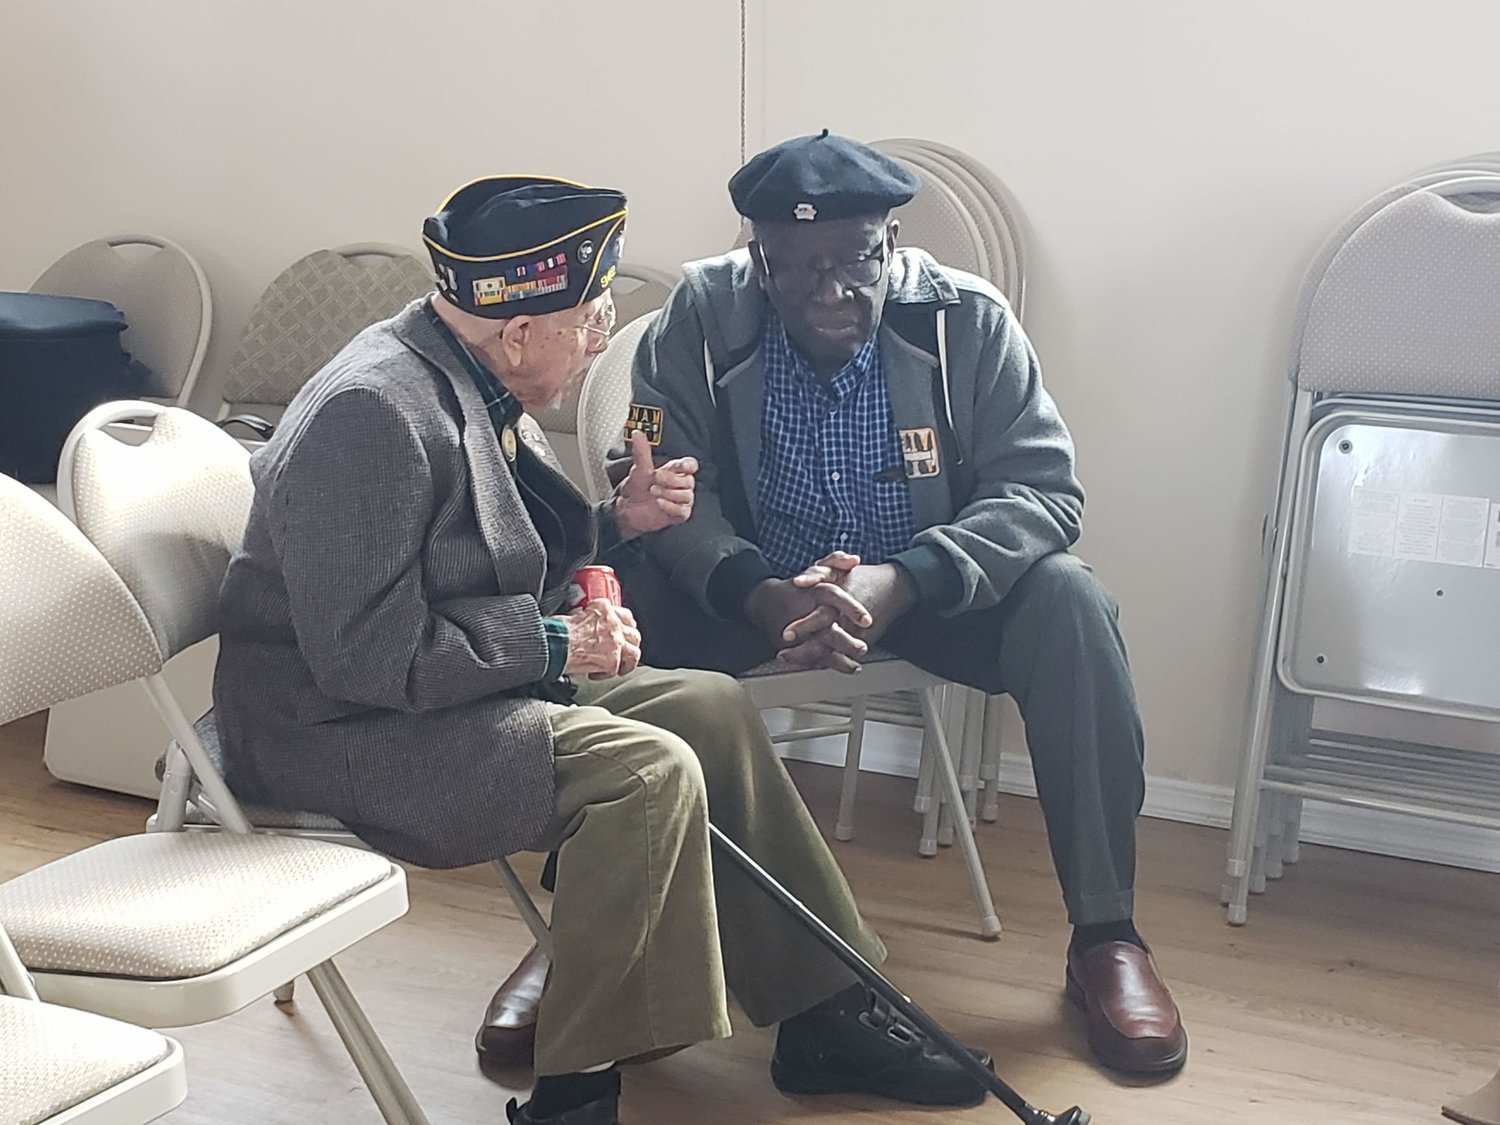 American Legion William Clinton Story Post 342's chaplain, Albert Klipfel, 92, left, a Navy veteran, and Army veteran Calvin Andrew, 72, talked about their time in the military after the Veterans Day program at the Freeport Recreation Center on Monday.